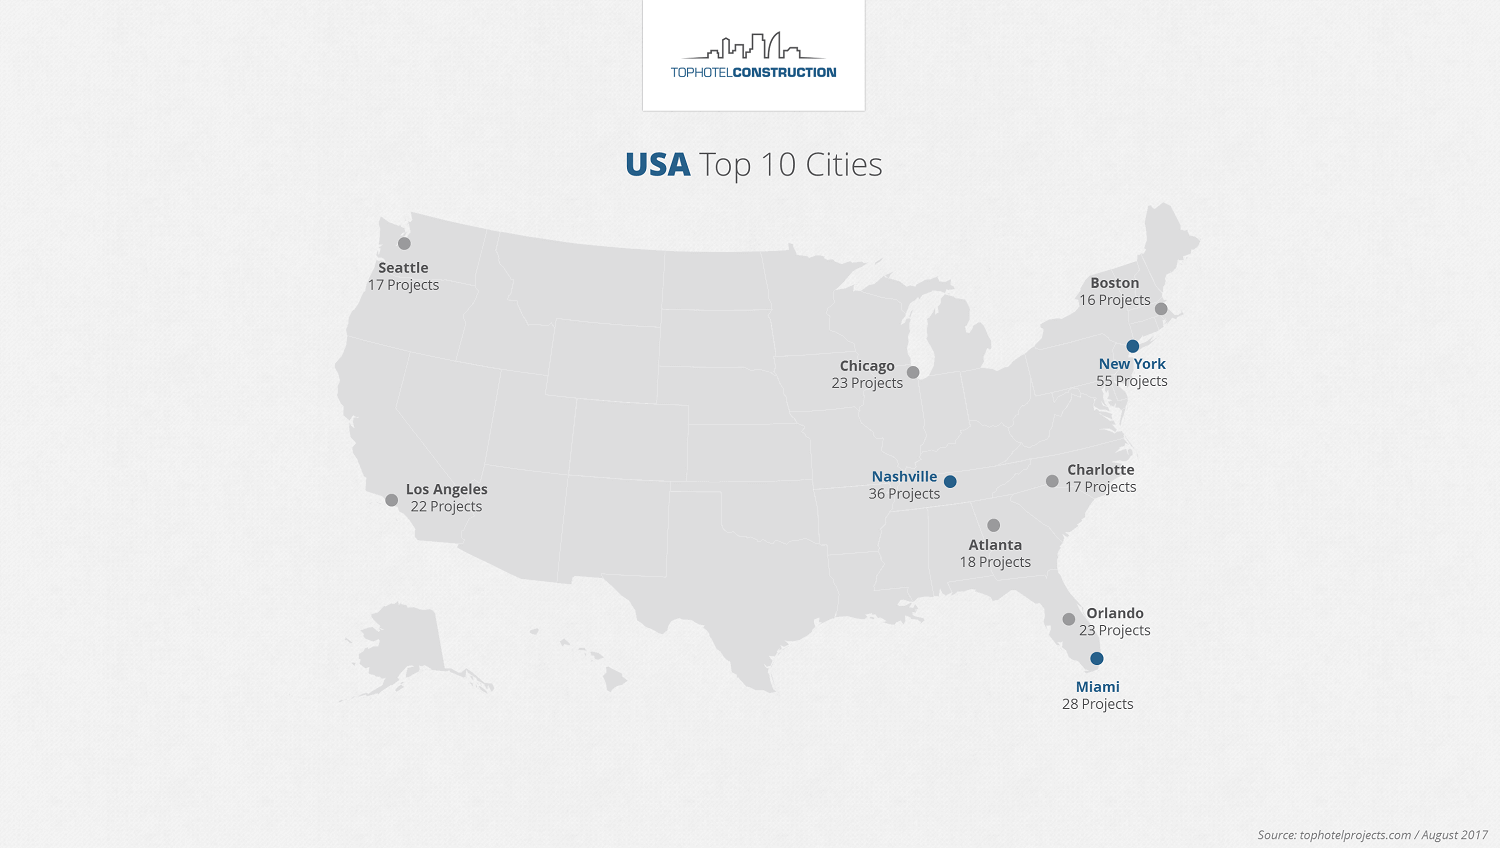 USA Top 10 Cities